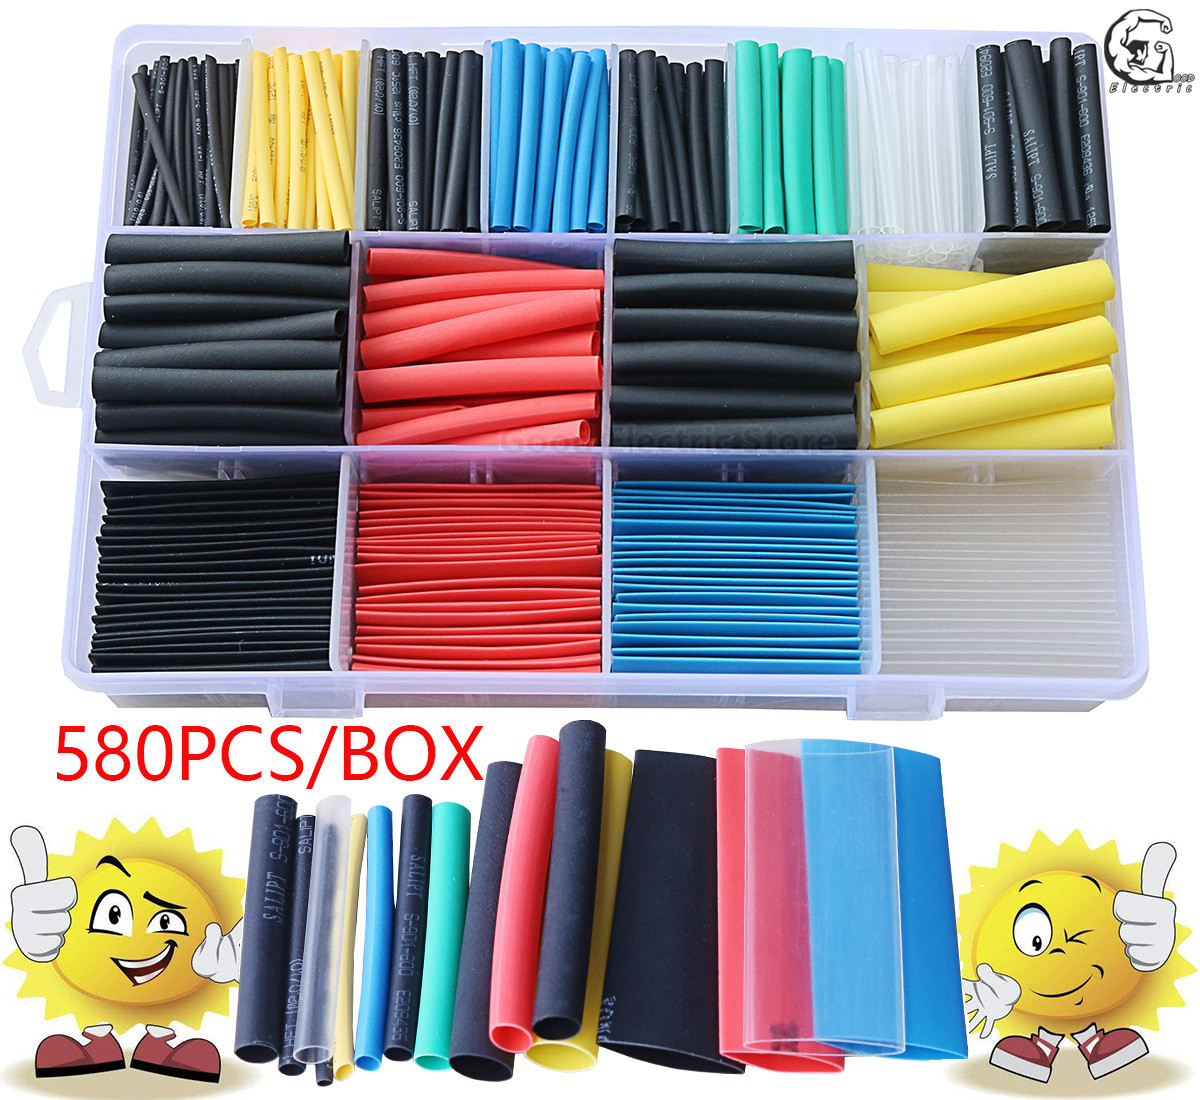 580pcs 530pcs 260pcs 2:1 Wrap Wire Cable Insulated Polyolefin Heat Shrink Tube Ratio Tubing Insulation Shrinkable Tubes